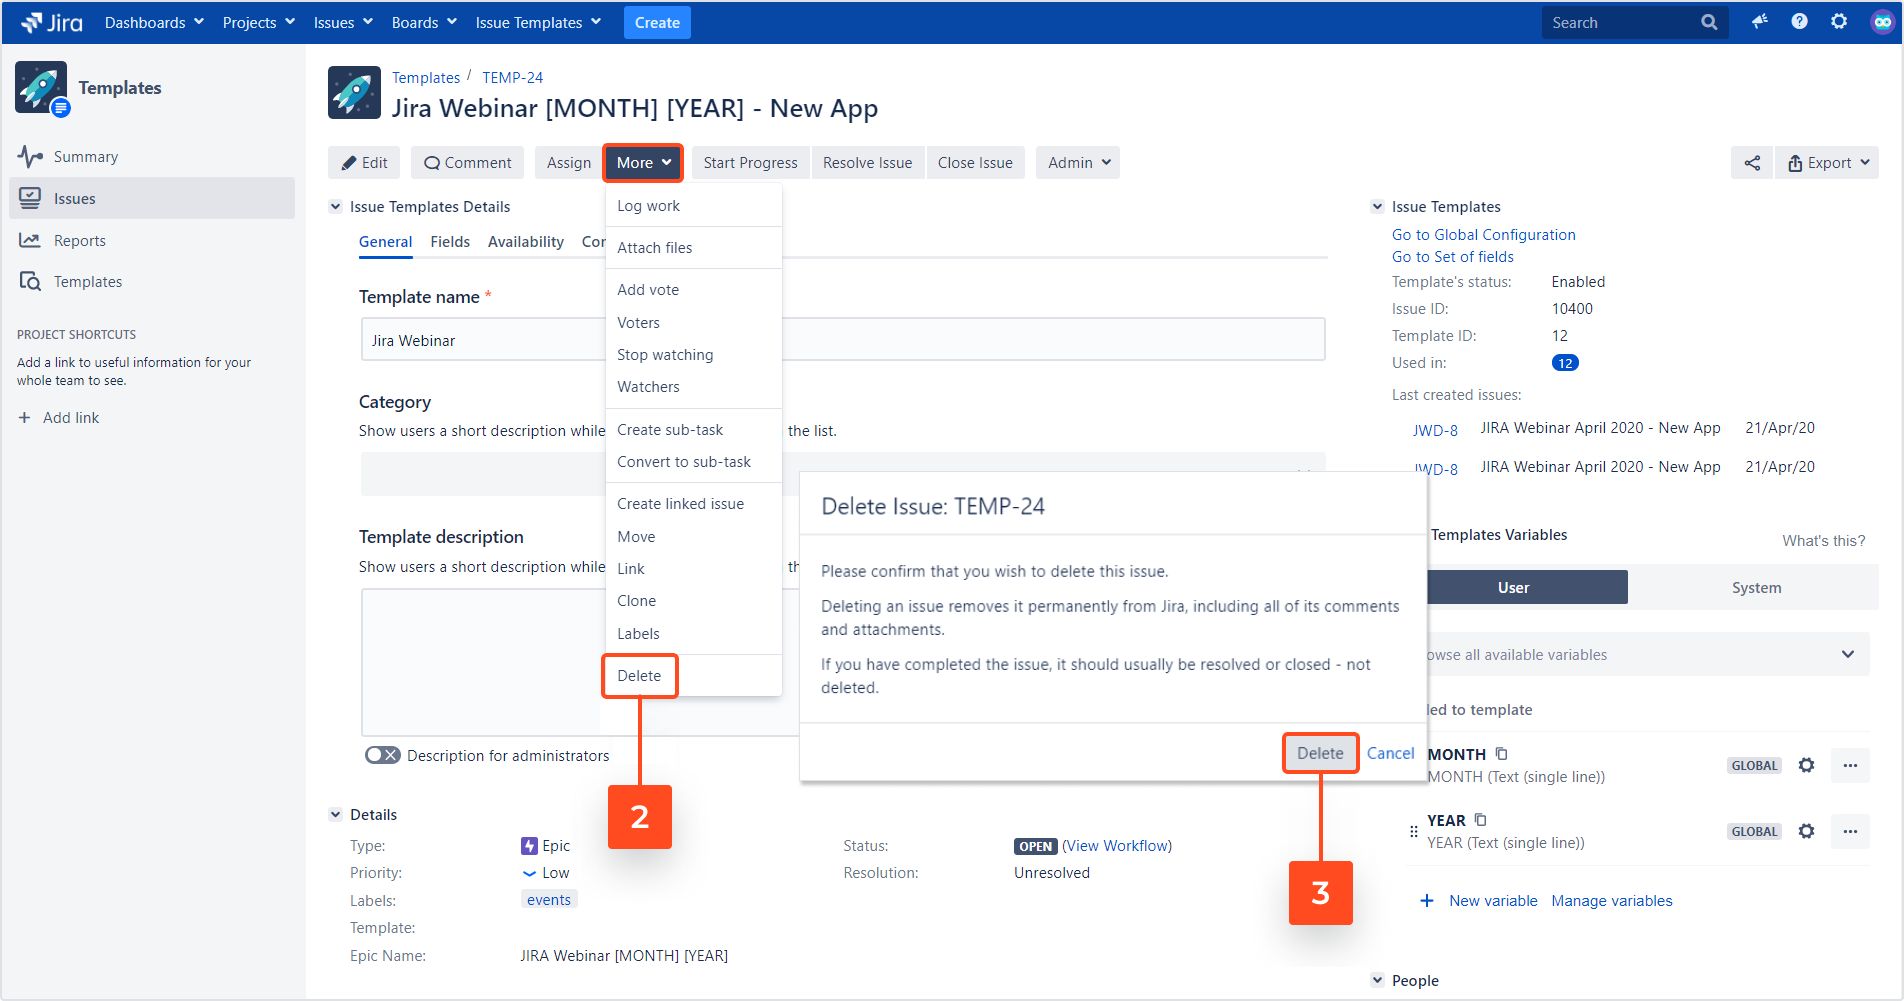 Issue Templates for Jira - Delete a template